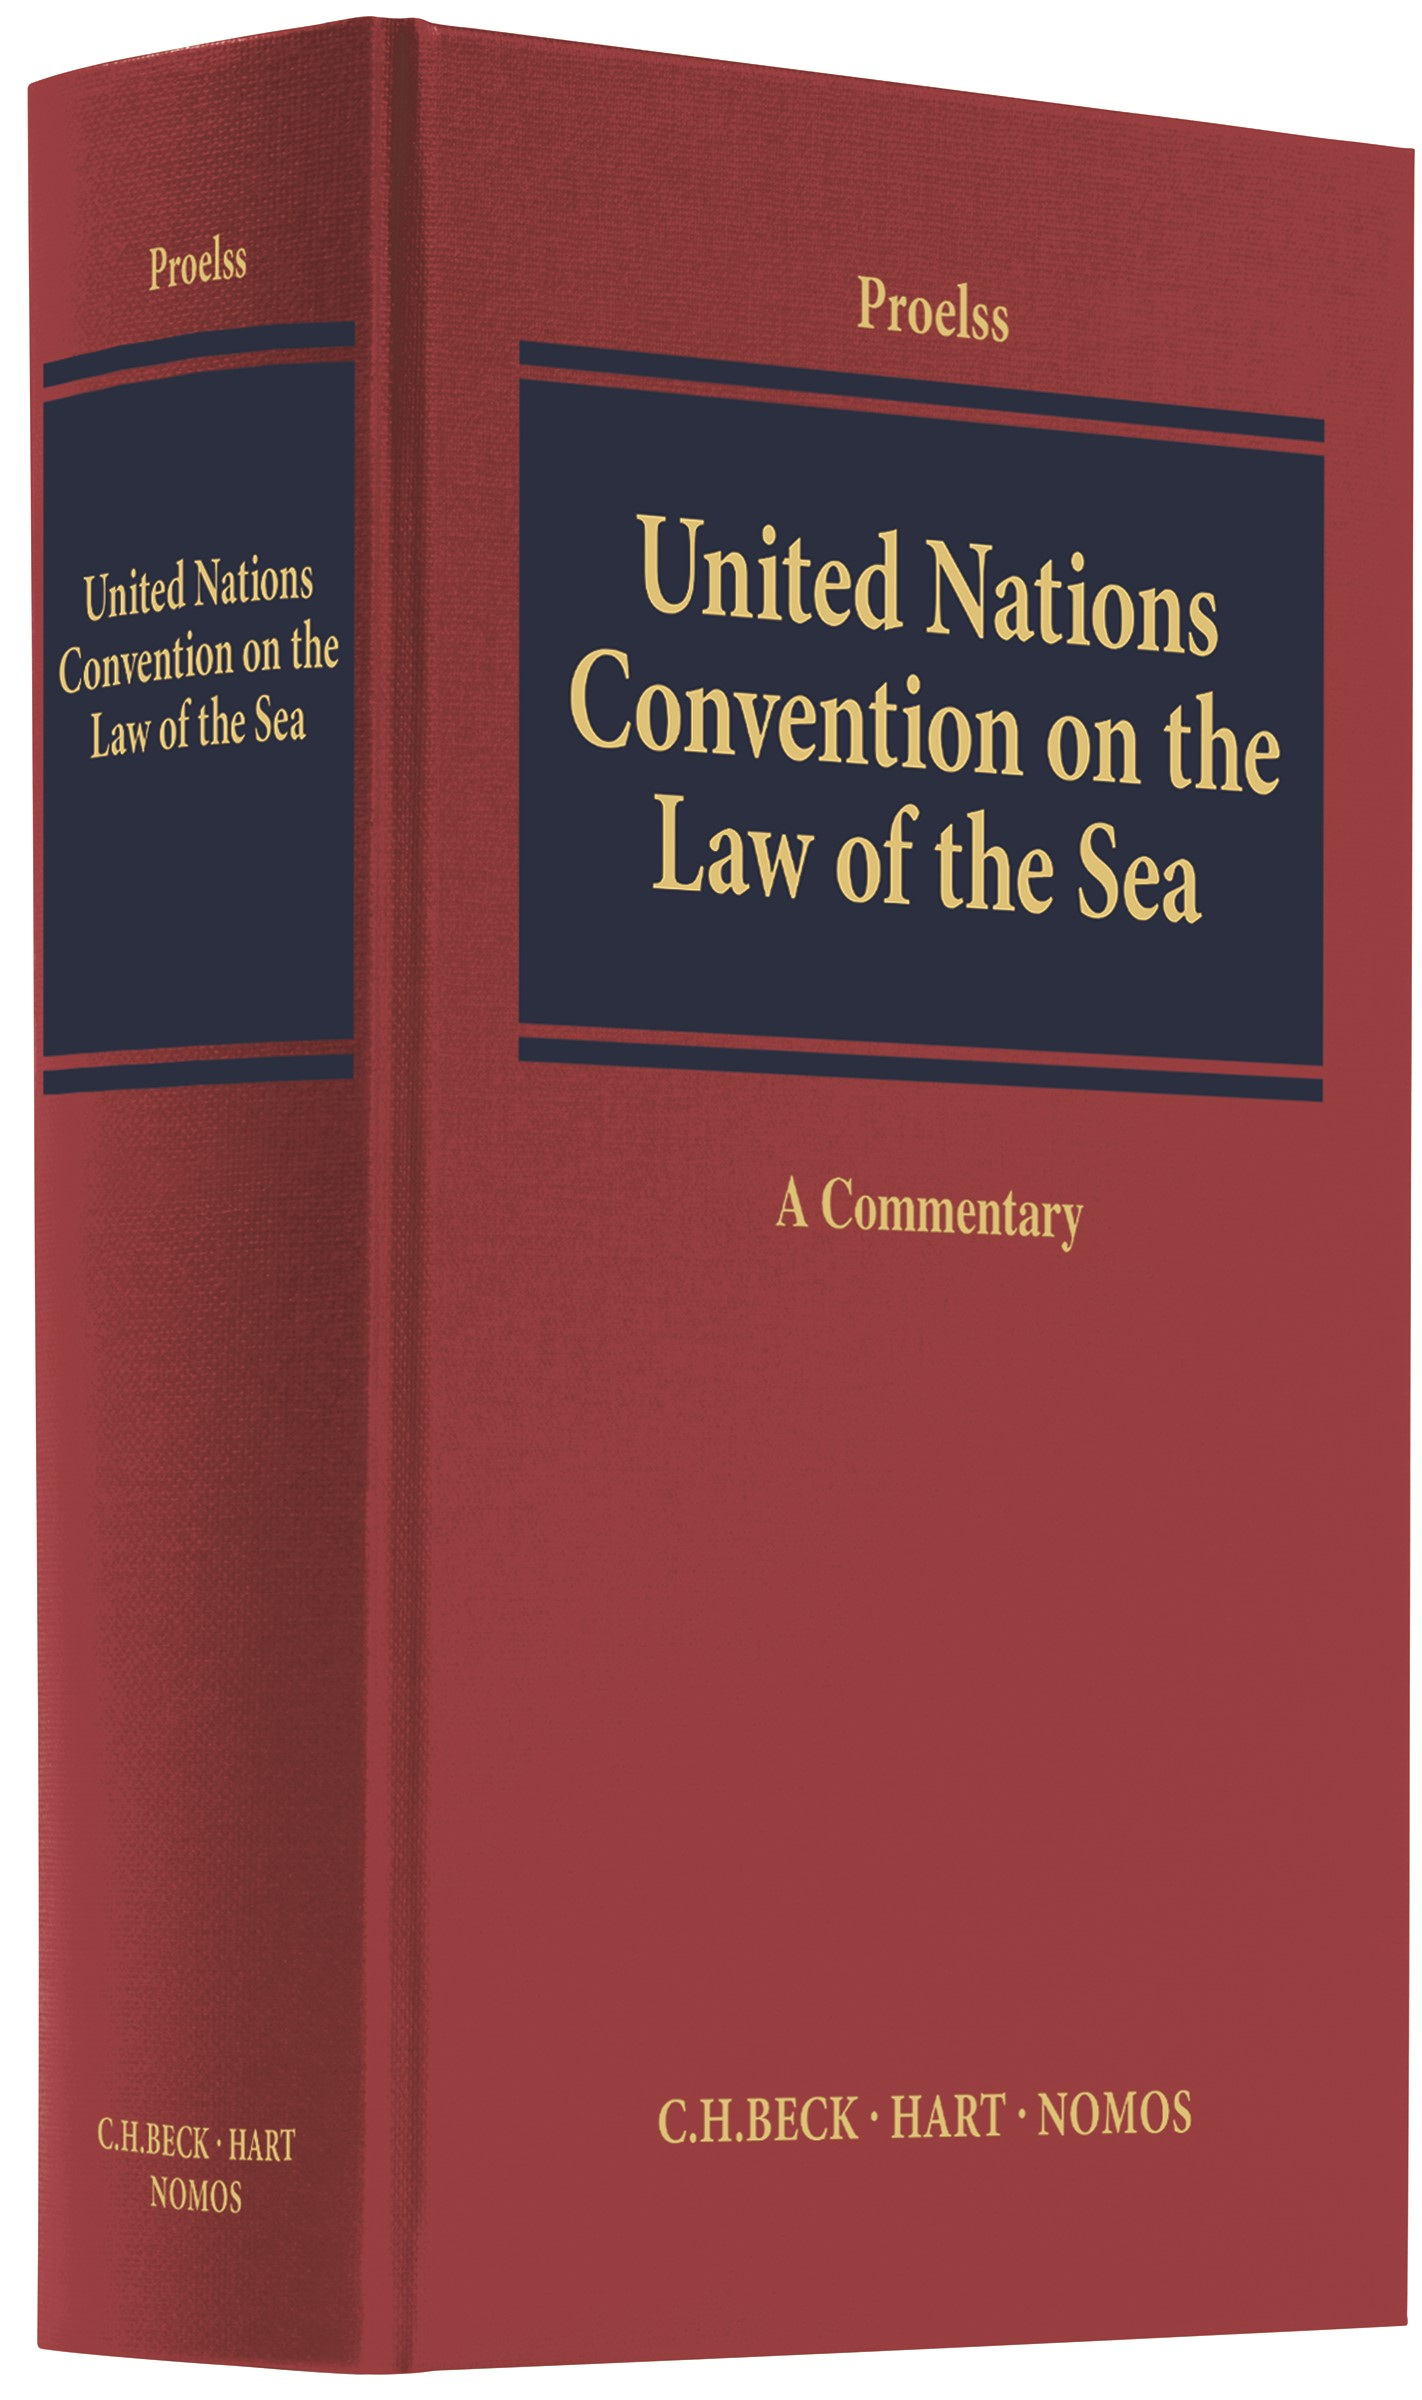 Abbildung von Proelss | United Nations Convention on the Law of the Sea: UNCLOS | 2017